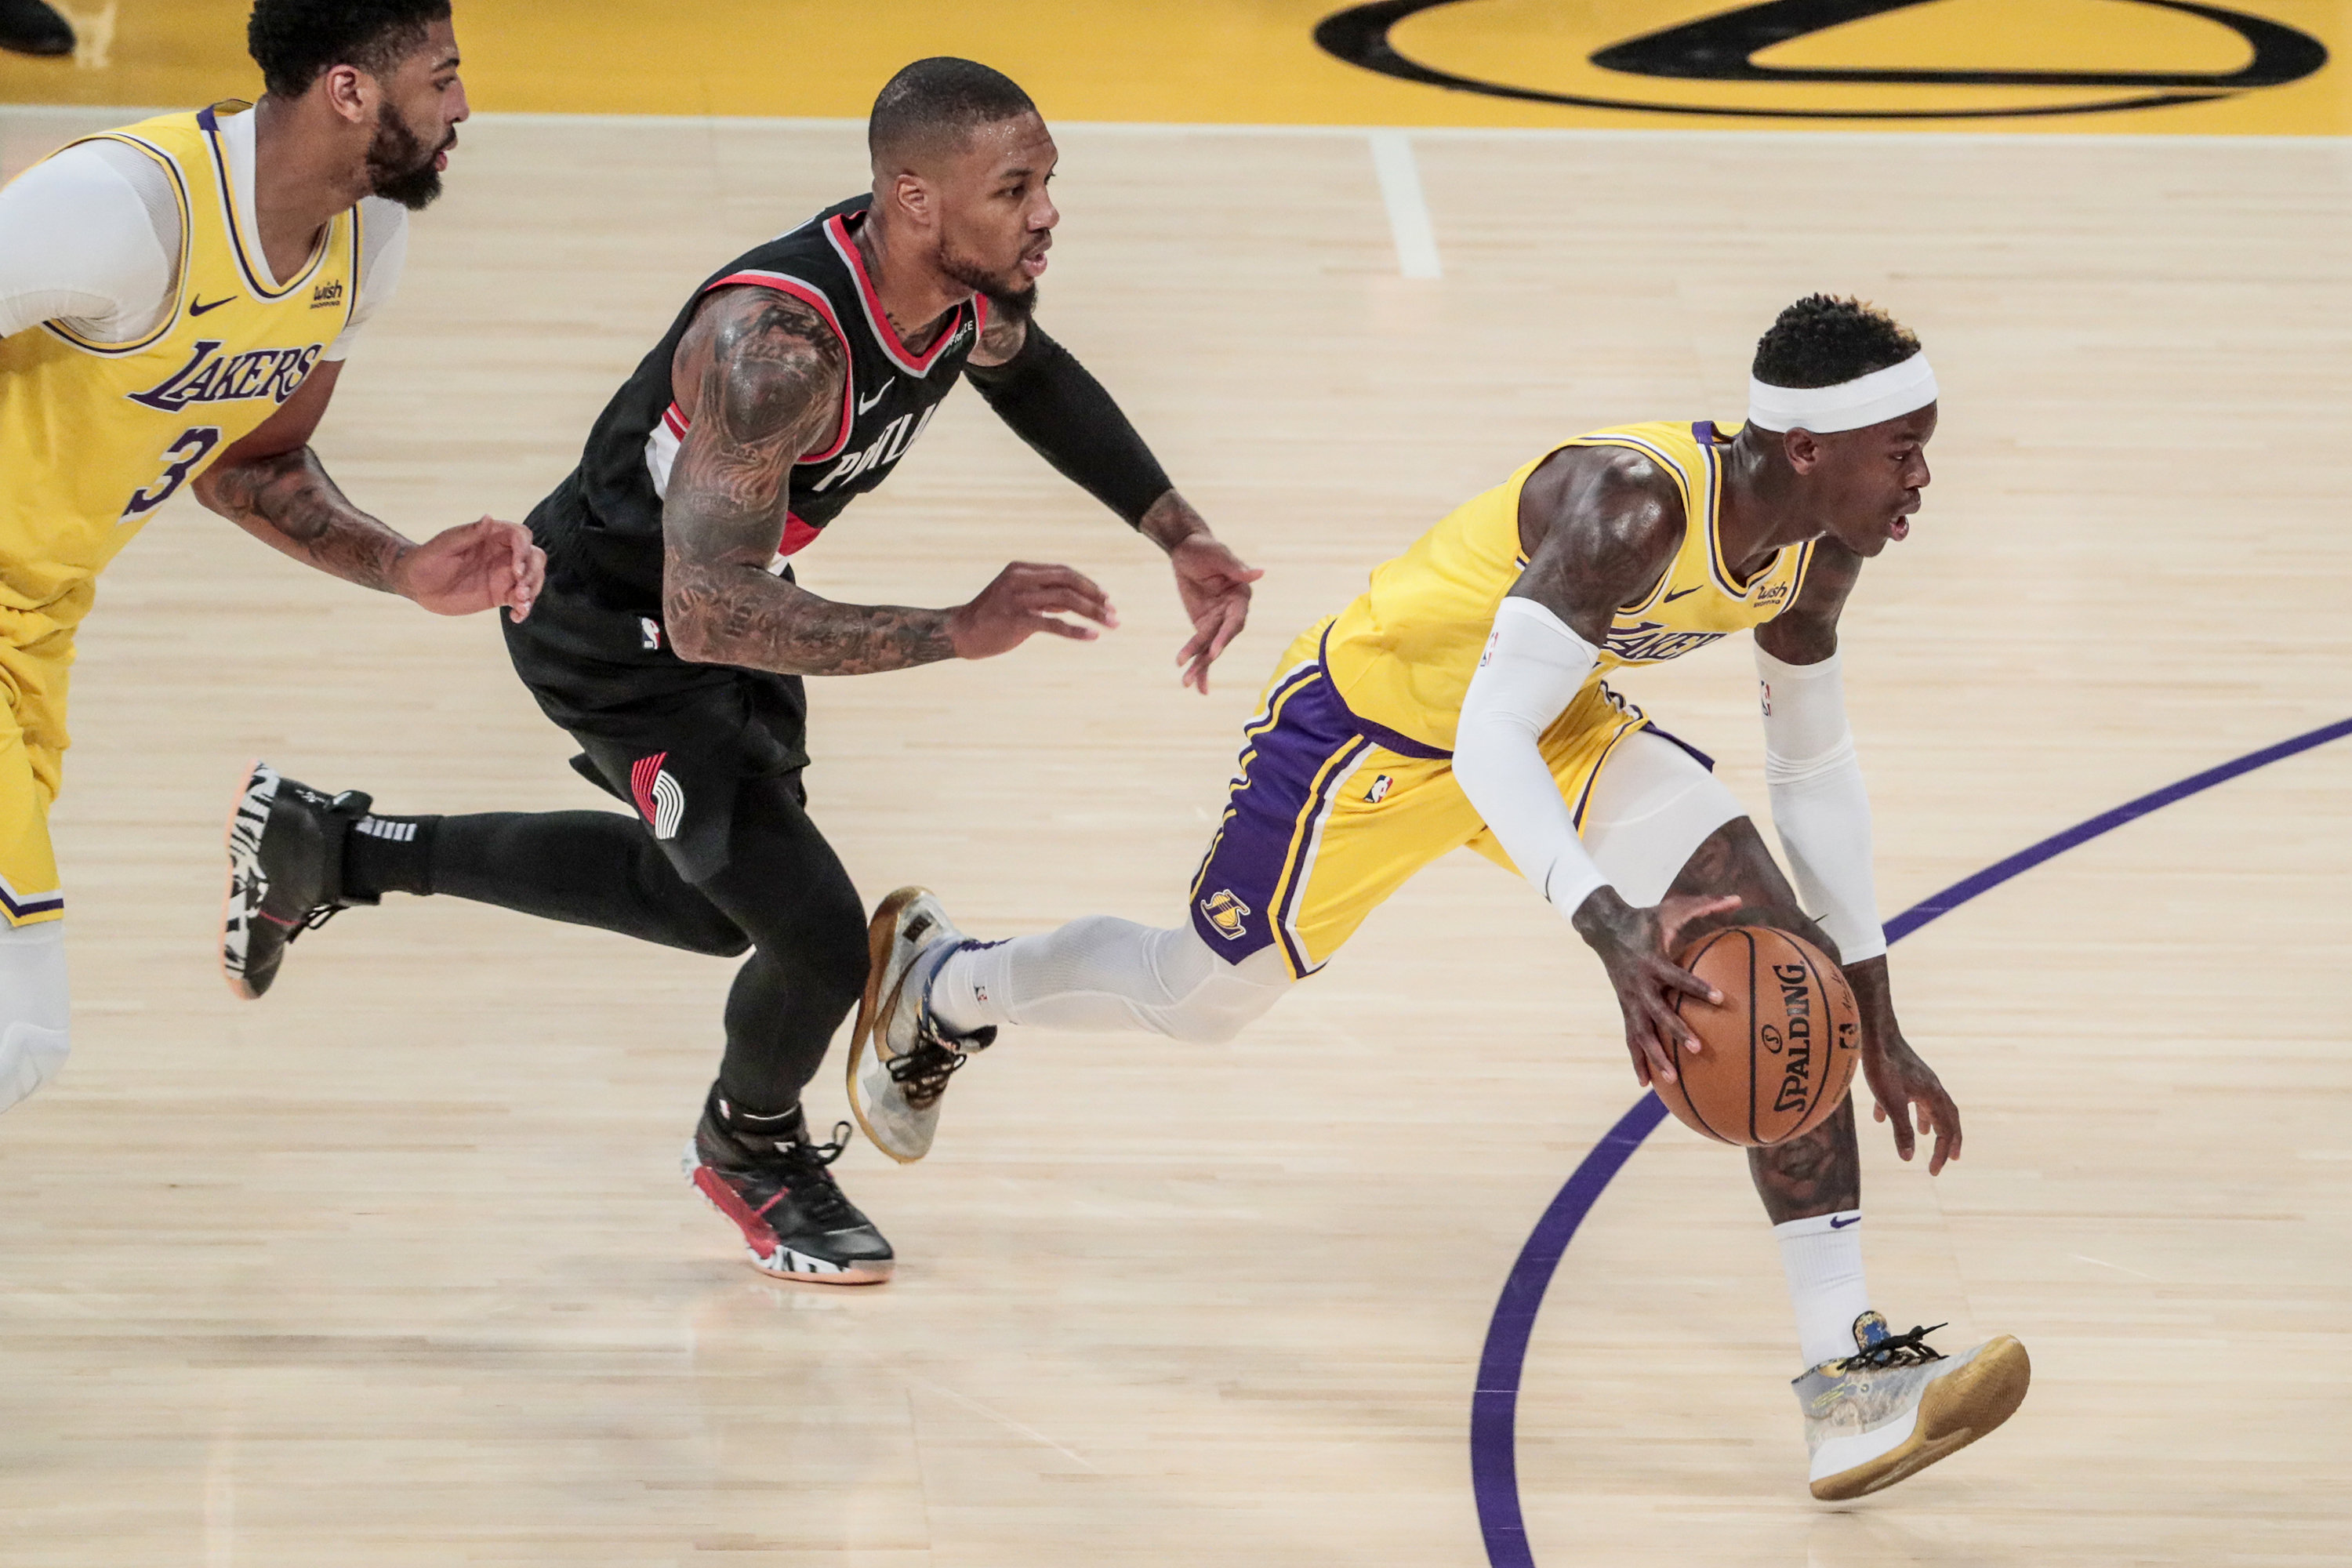 Lakers Blazers at Staples